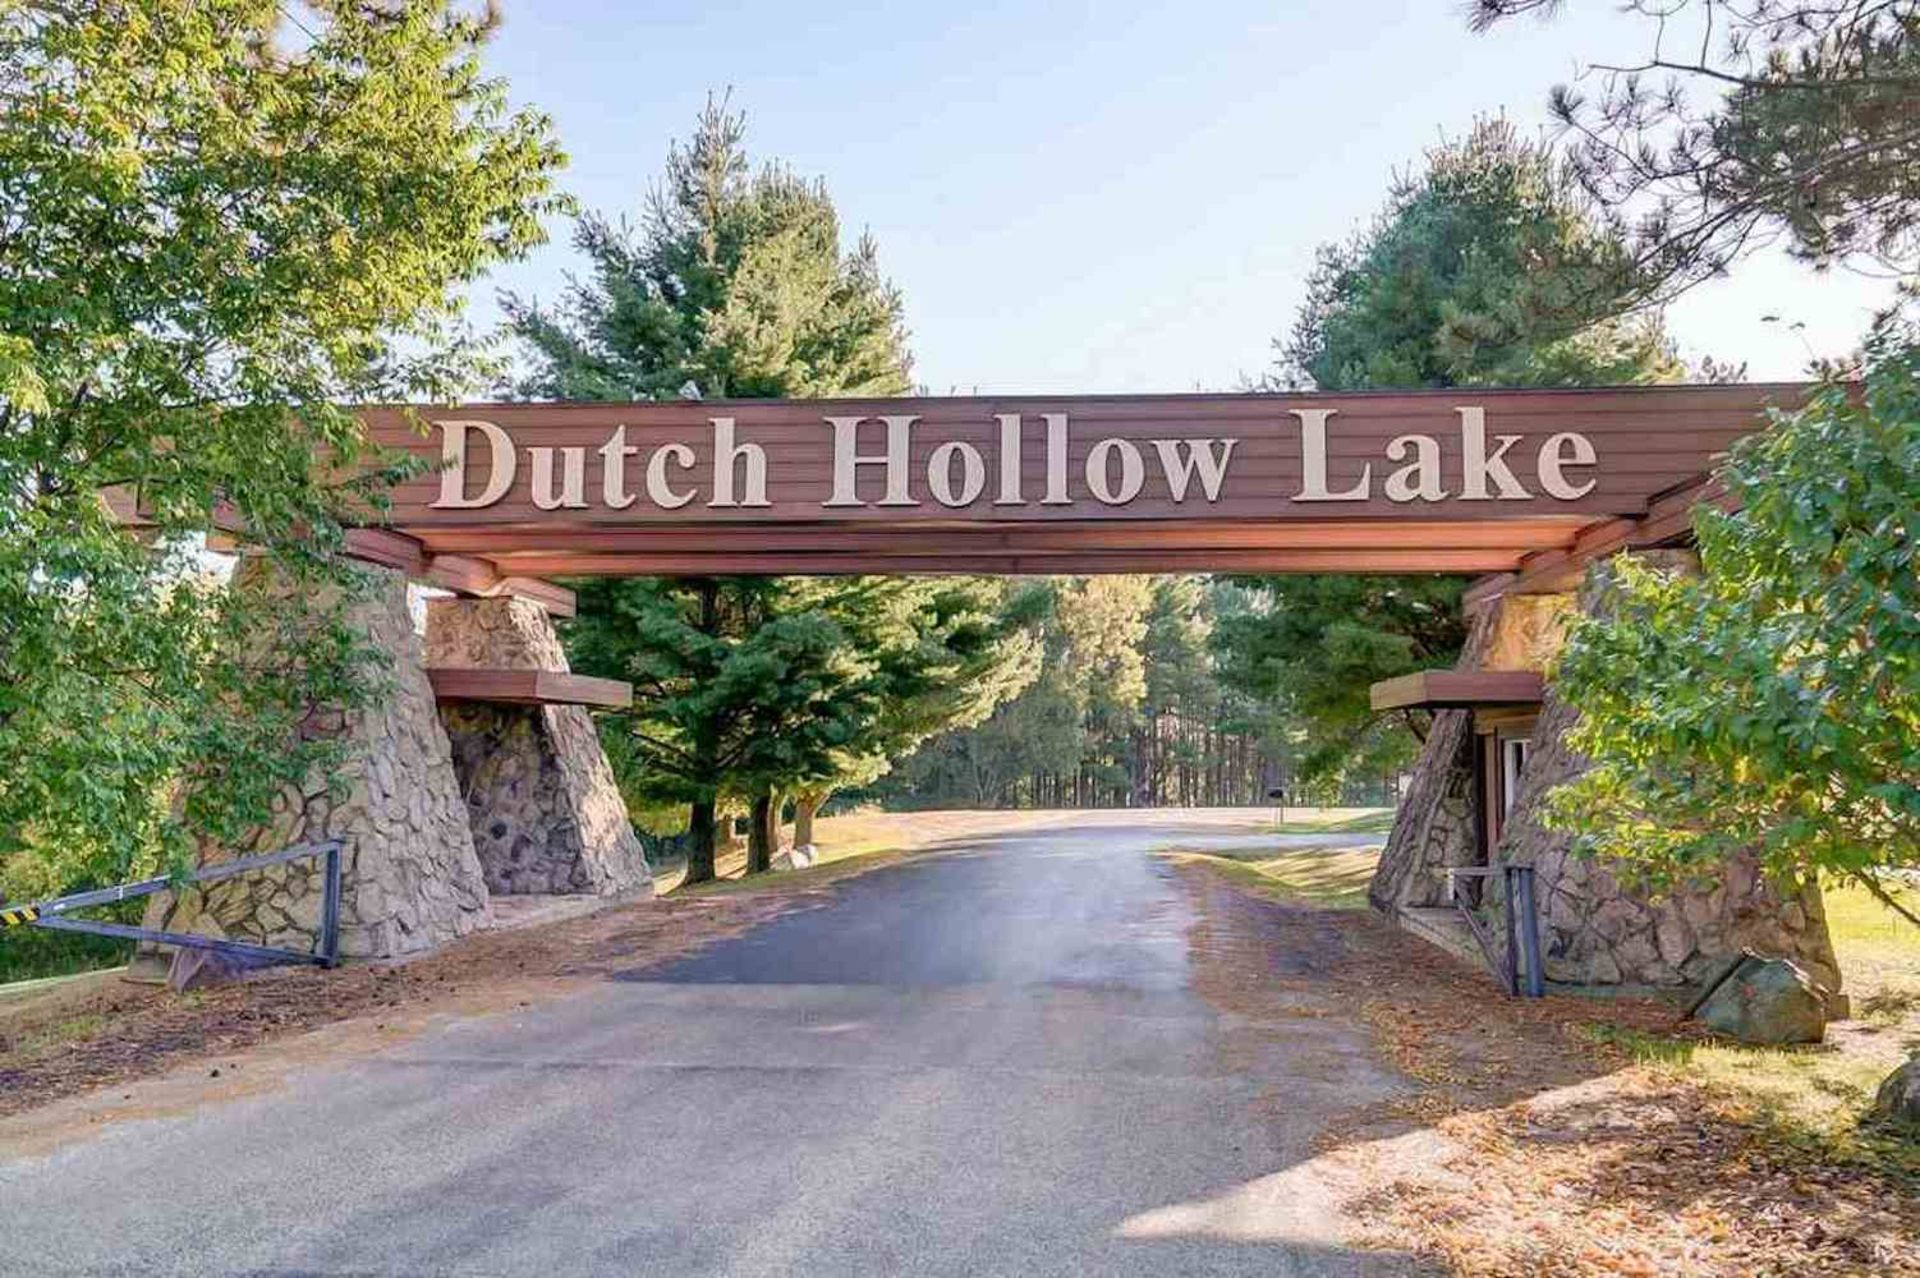 Gorgeous Corner Lot in Wisconsin, Just a Short Walk to Dutch Hollow Lake! - Image 4 of 7